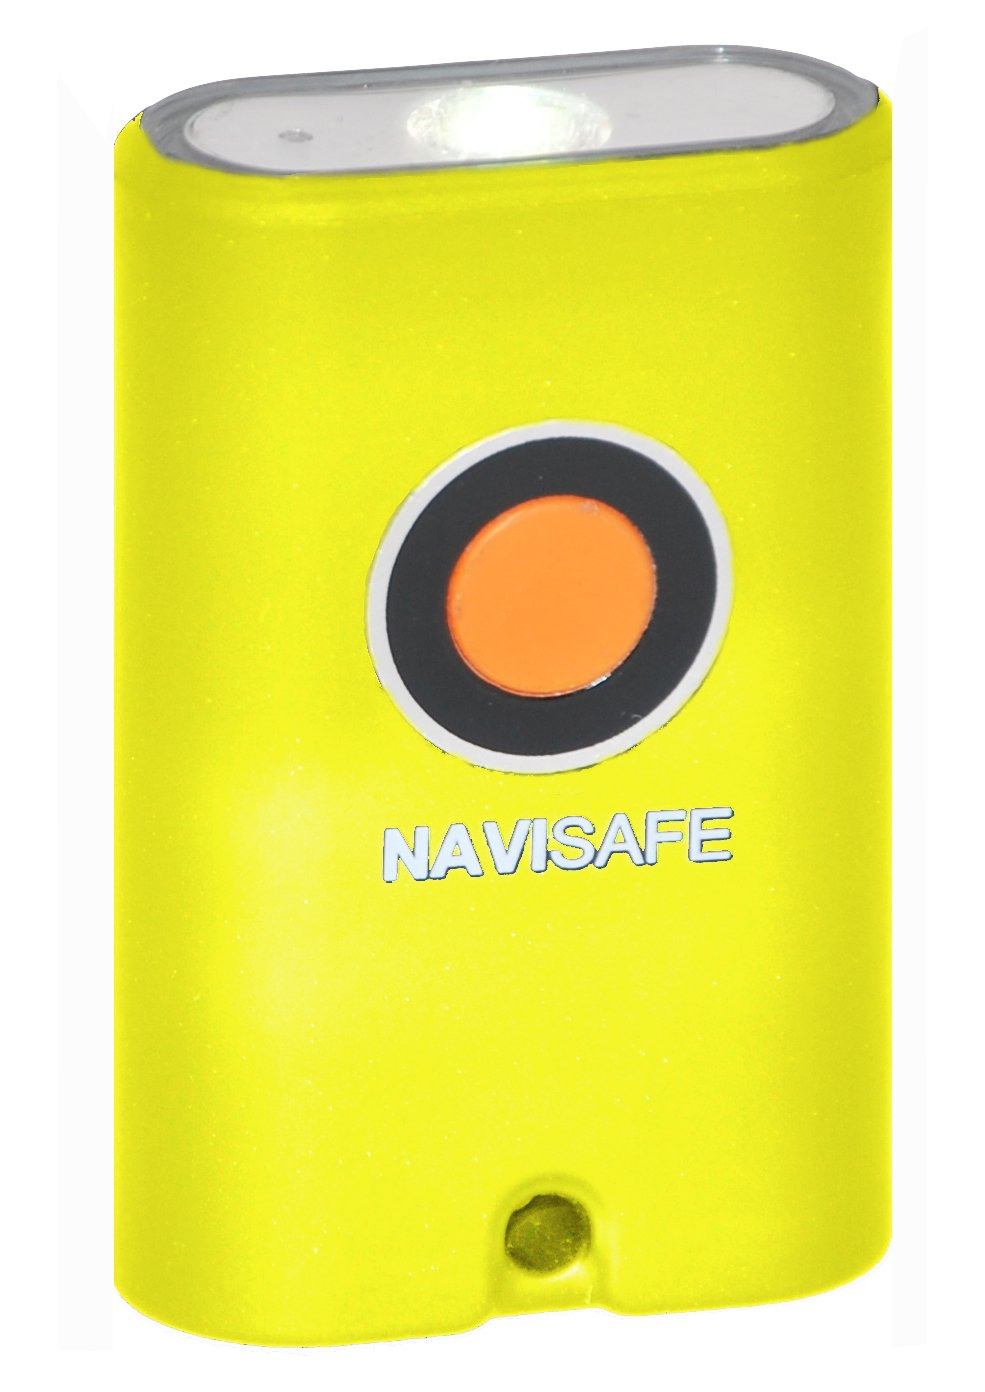 Navi-Safe Mini Lampe de poche LED Étanche 400 - Navi Light Mini